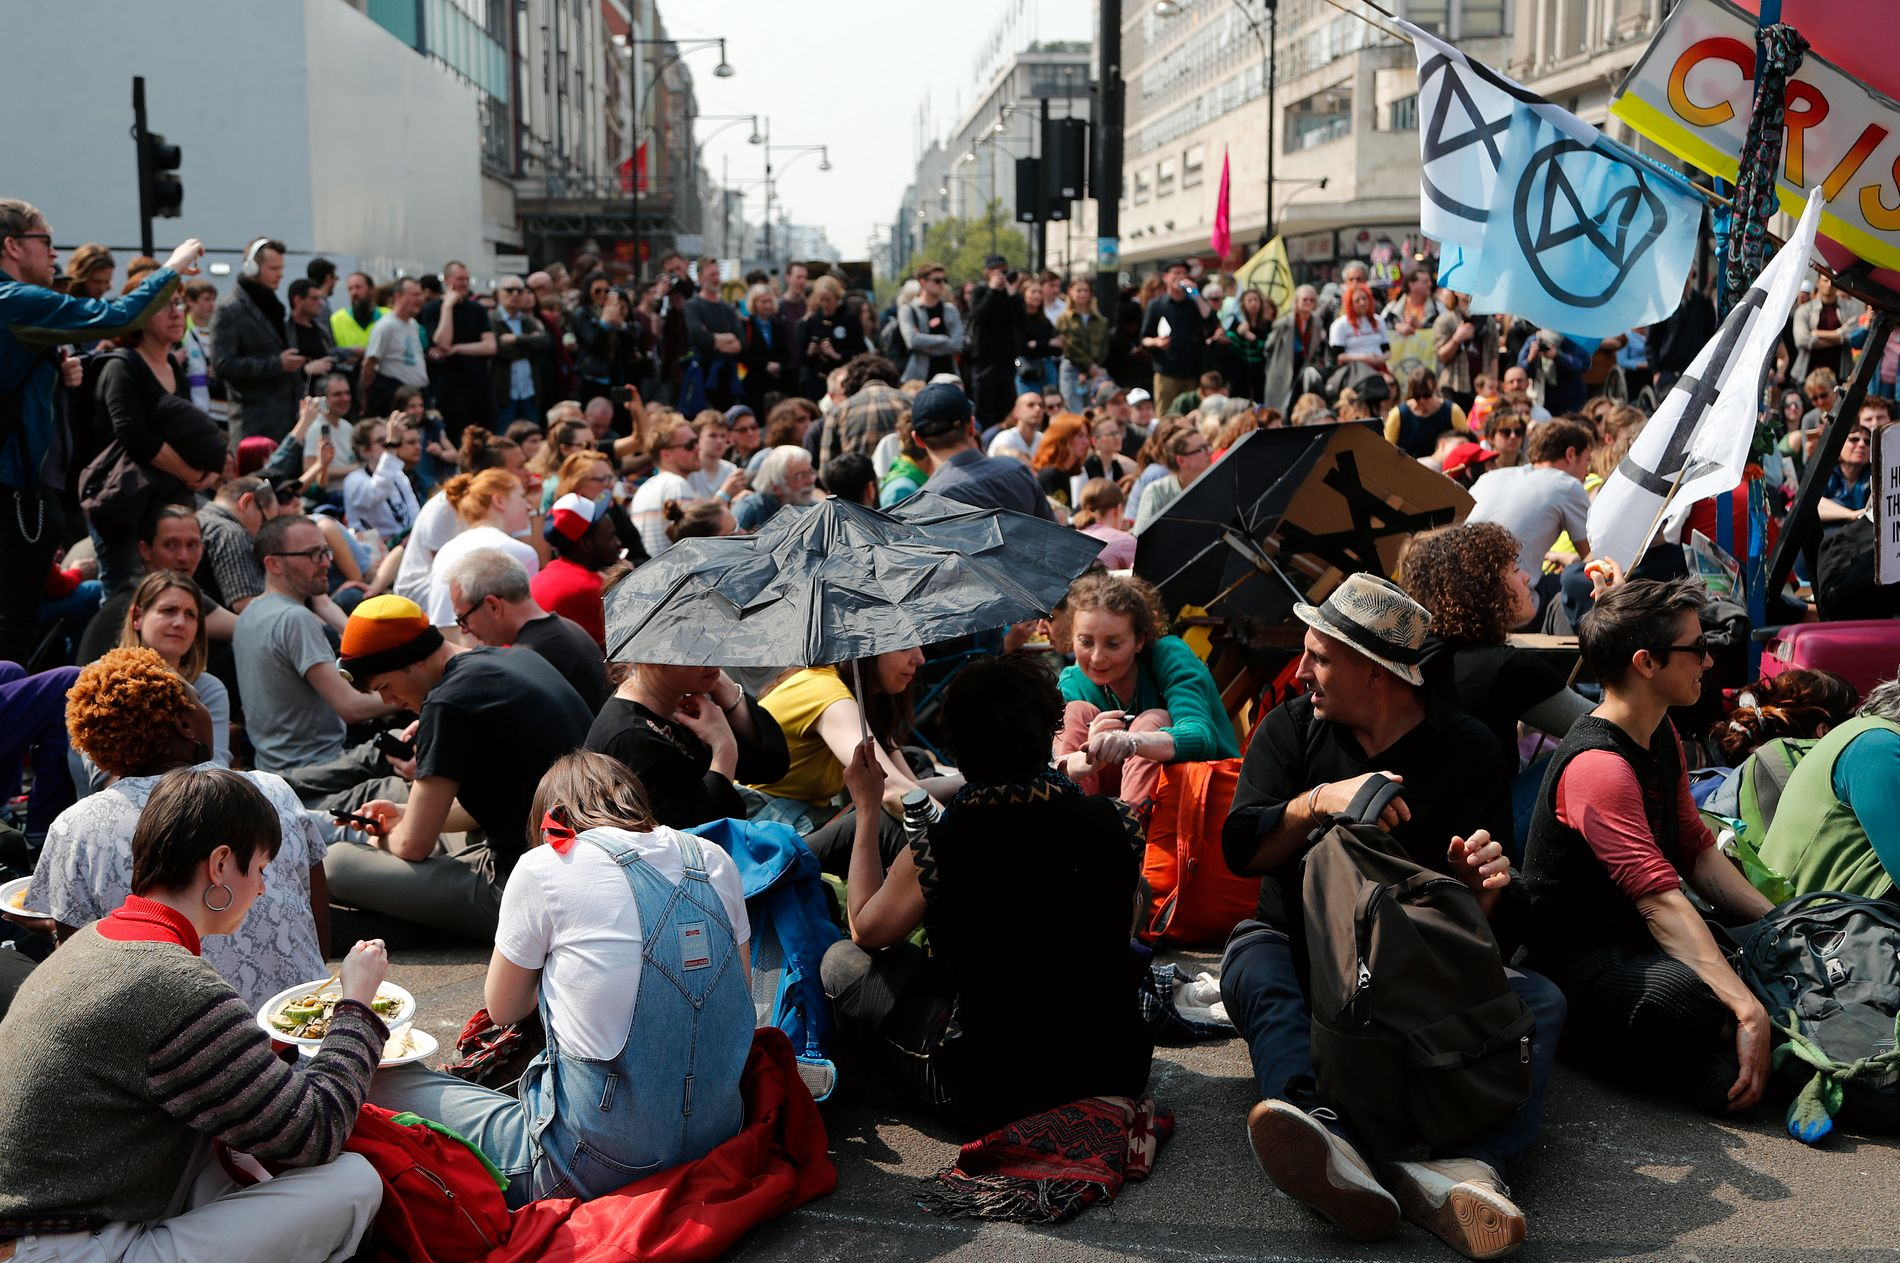 BLOKKERER: Demonstranter blokkerer Oxford Circus i London som en del av klimaprotestene arrangert av klimaaktivistgruppen Extinction Rebellion.